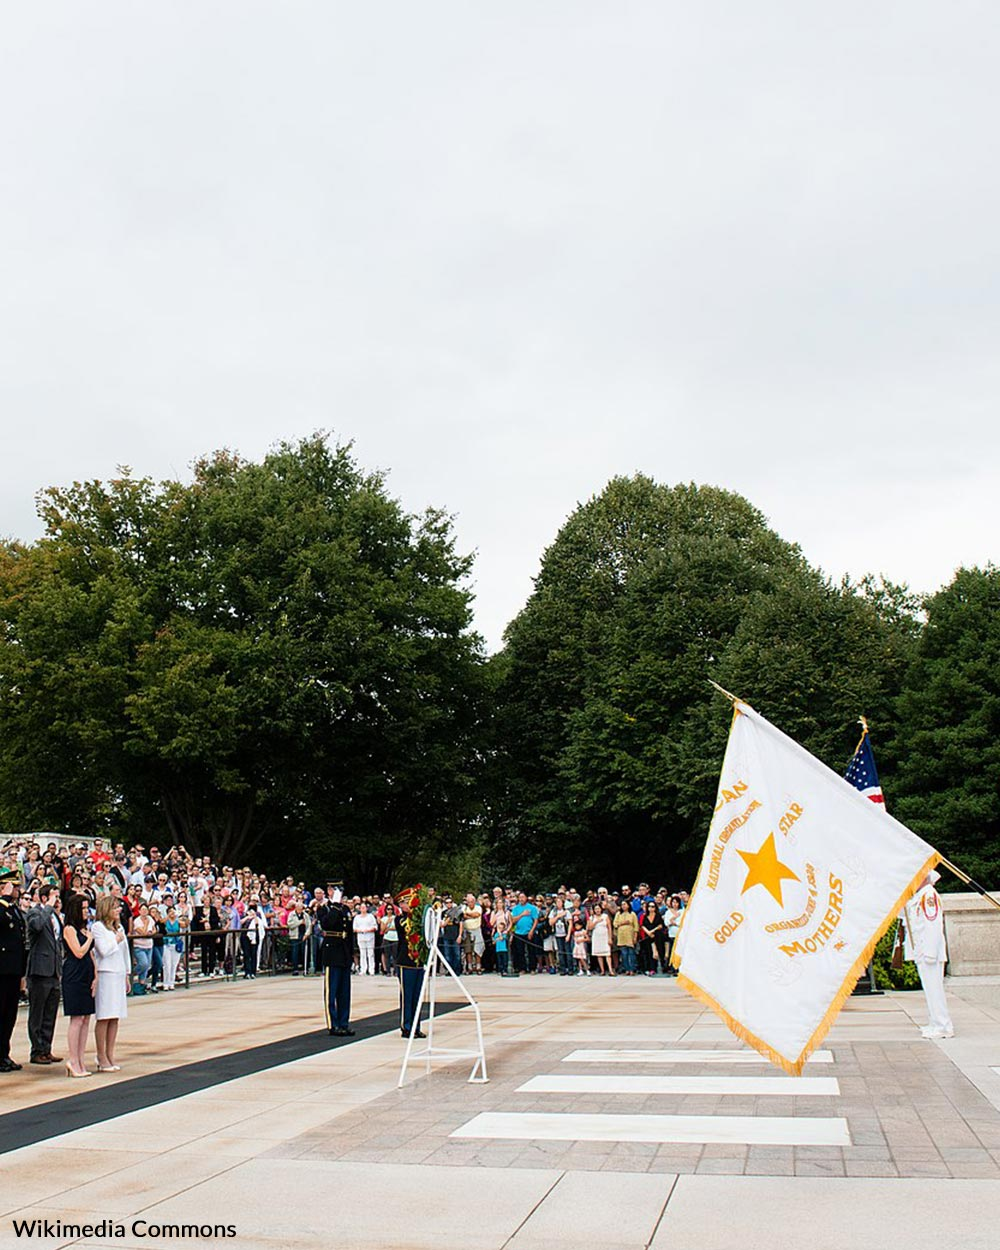 There are thousands of Gold Star Families in the U.S.